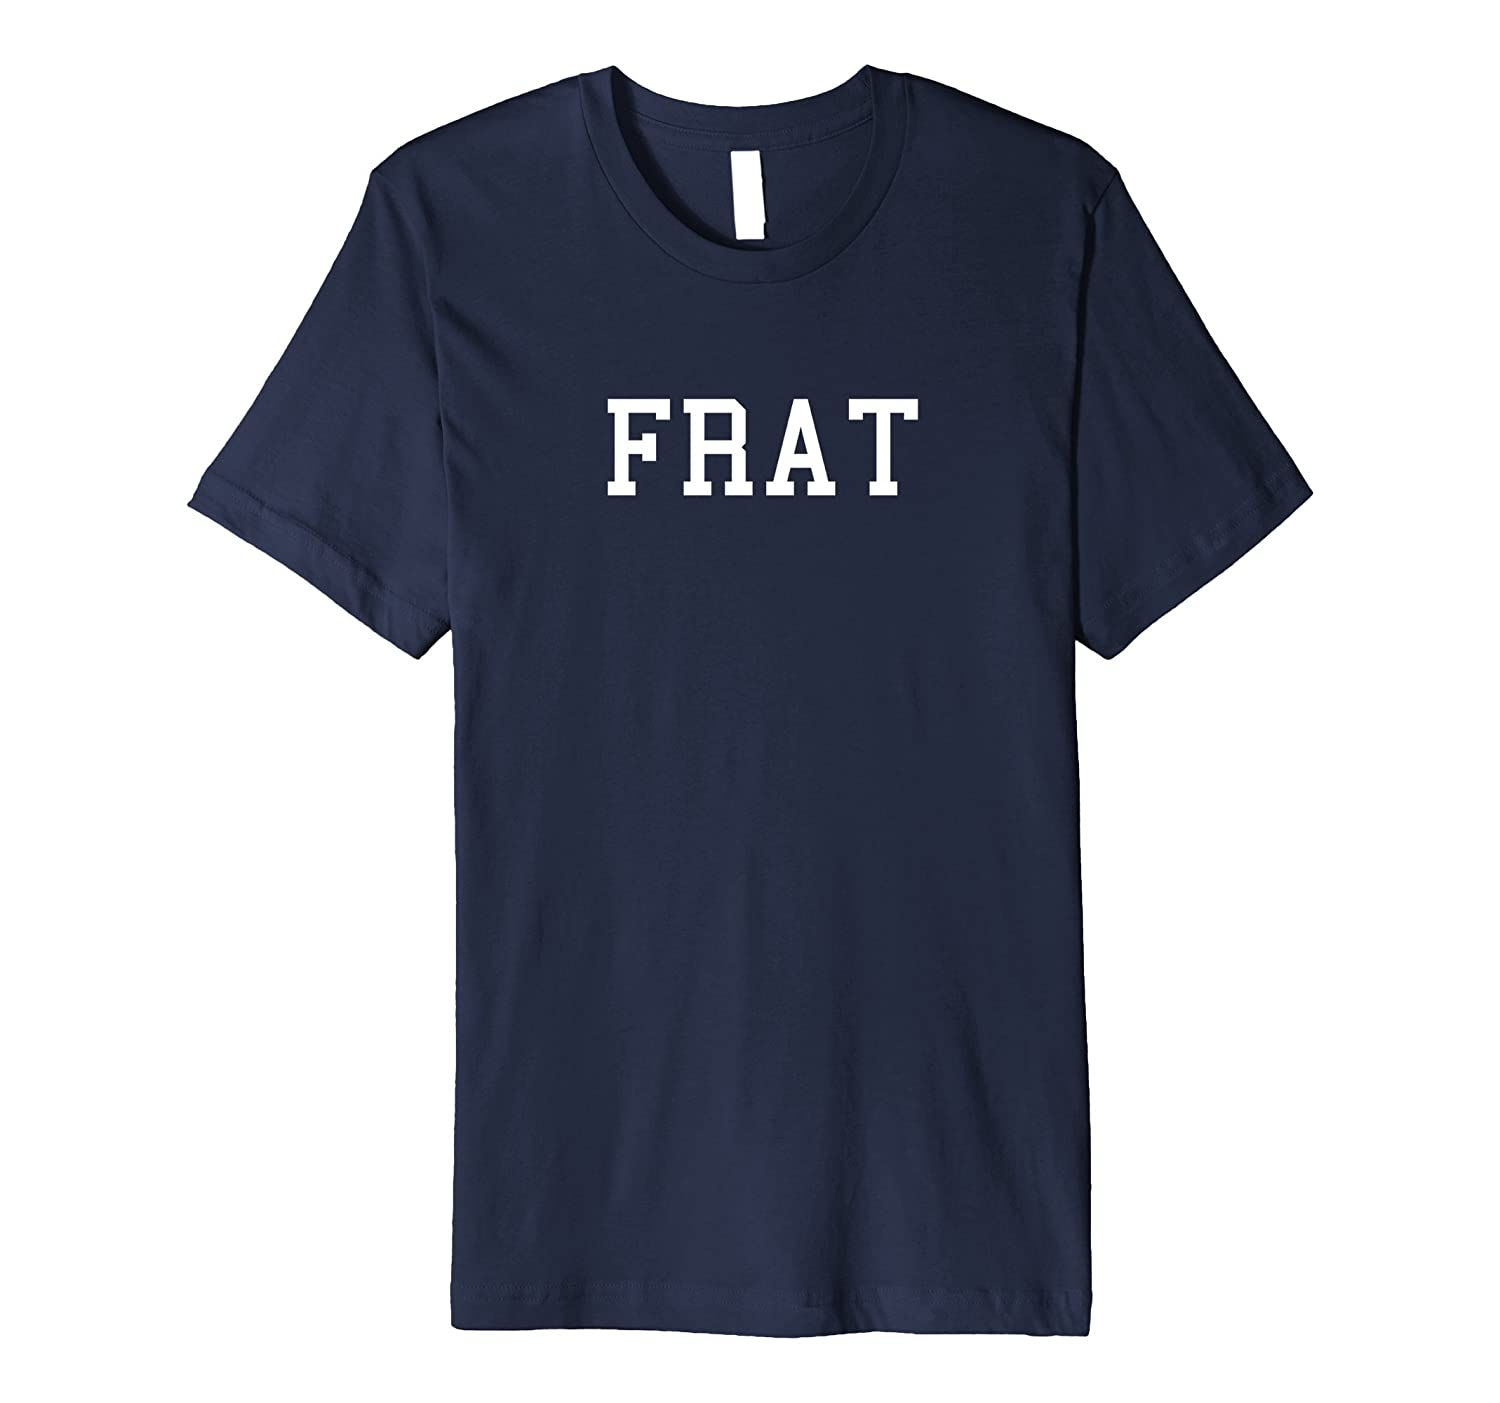 Mens FRAT - Funny College Fraternity shirt - Simple One Word-TH